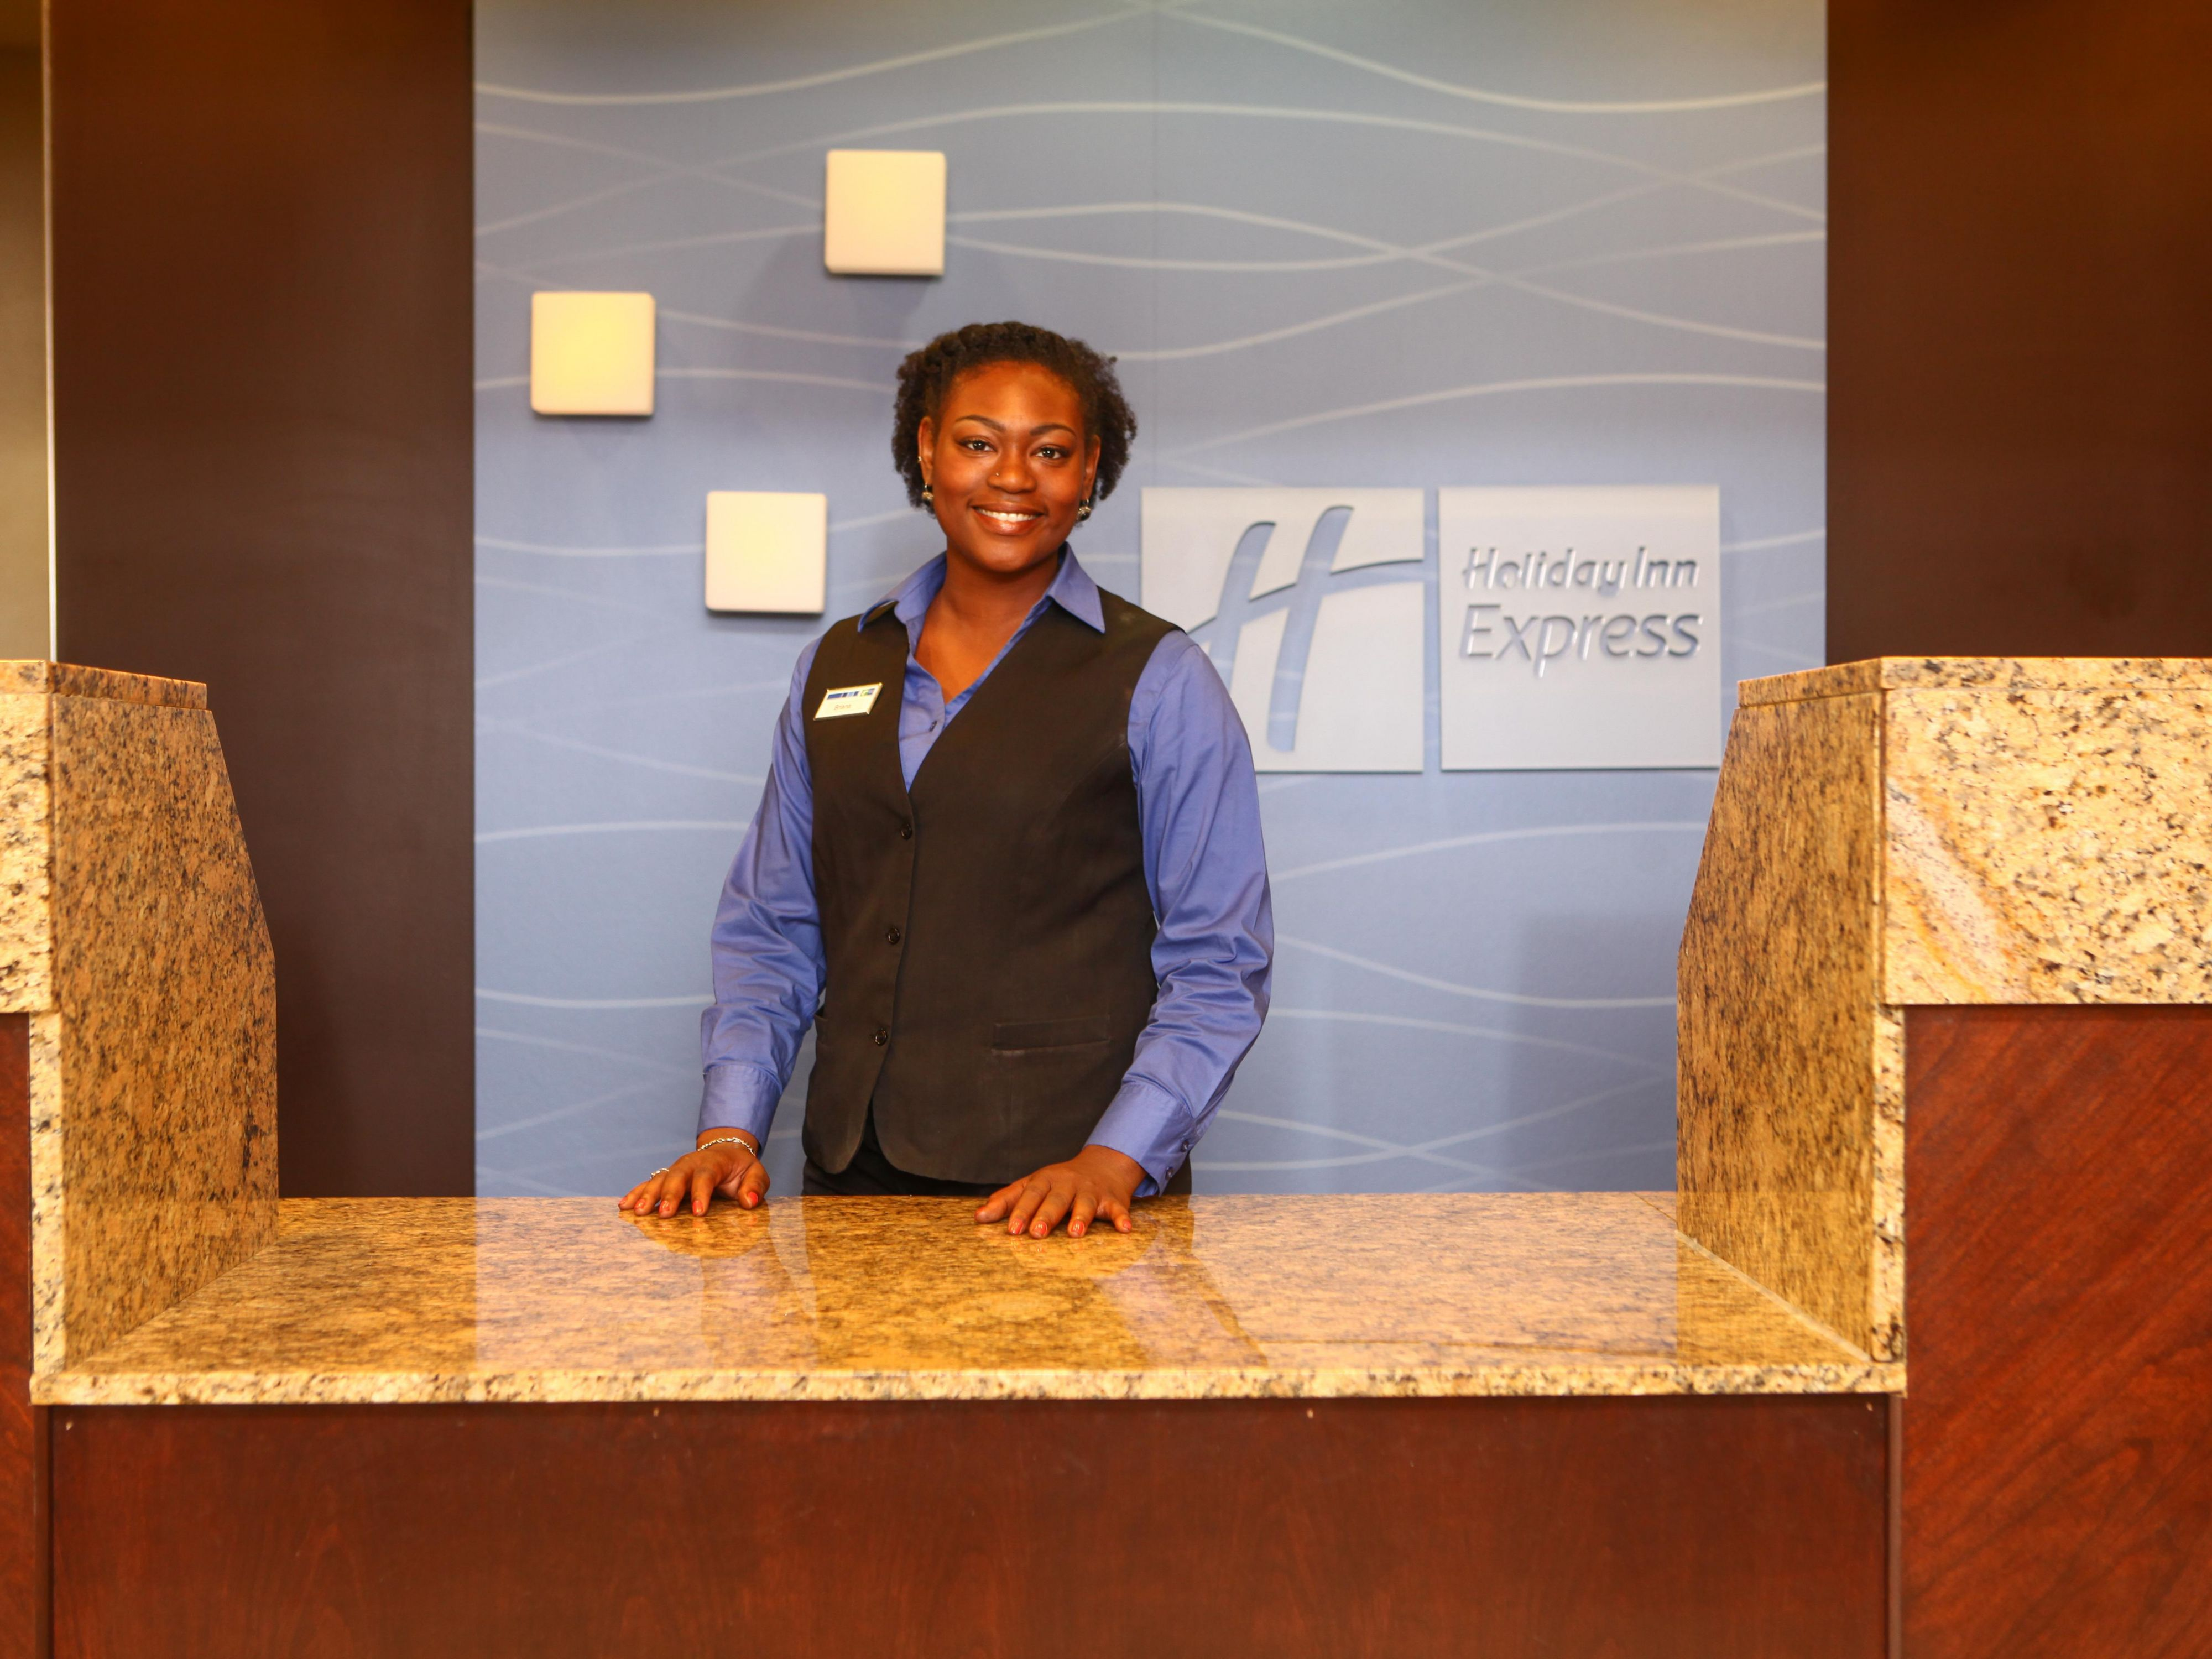 Front Desk Agent Welcomes You